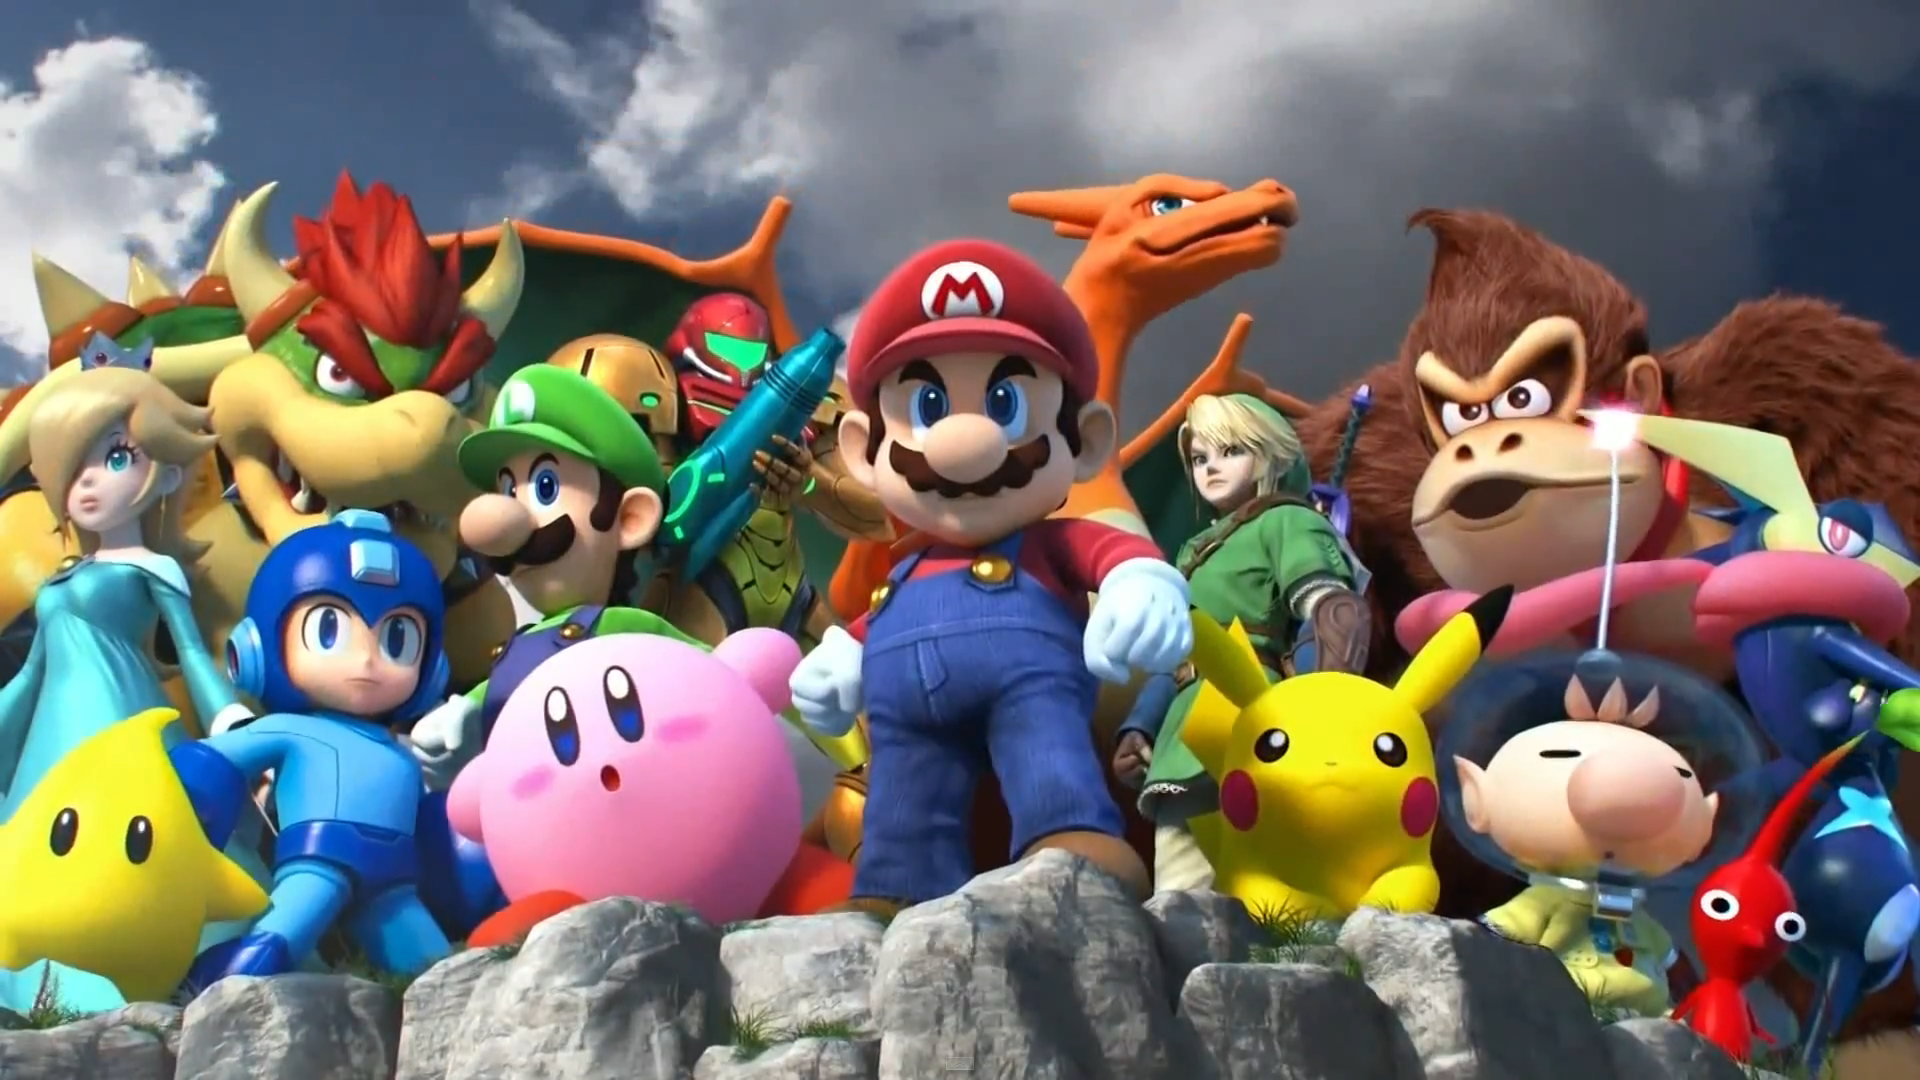 ... MarkProductions Super Smash Bros. characters poster (high quality) by MarkProductions